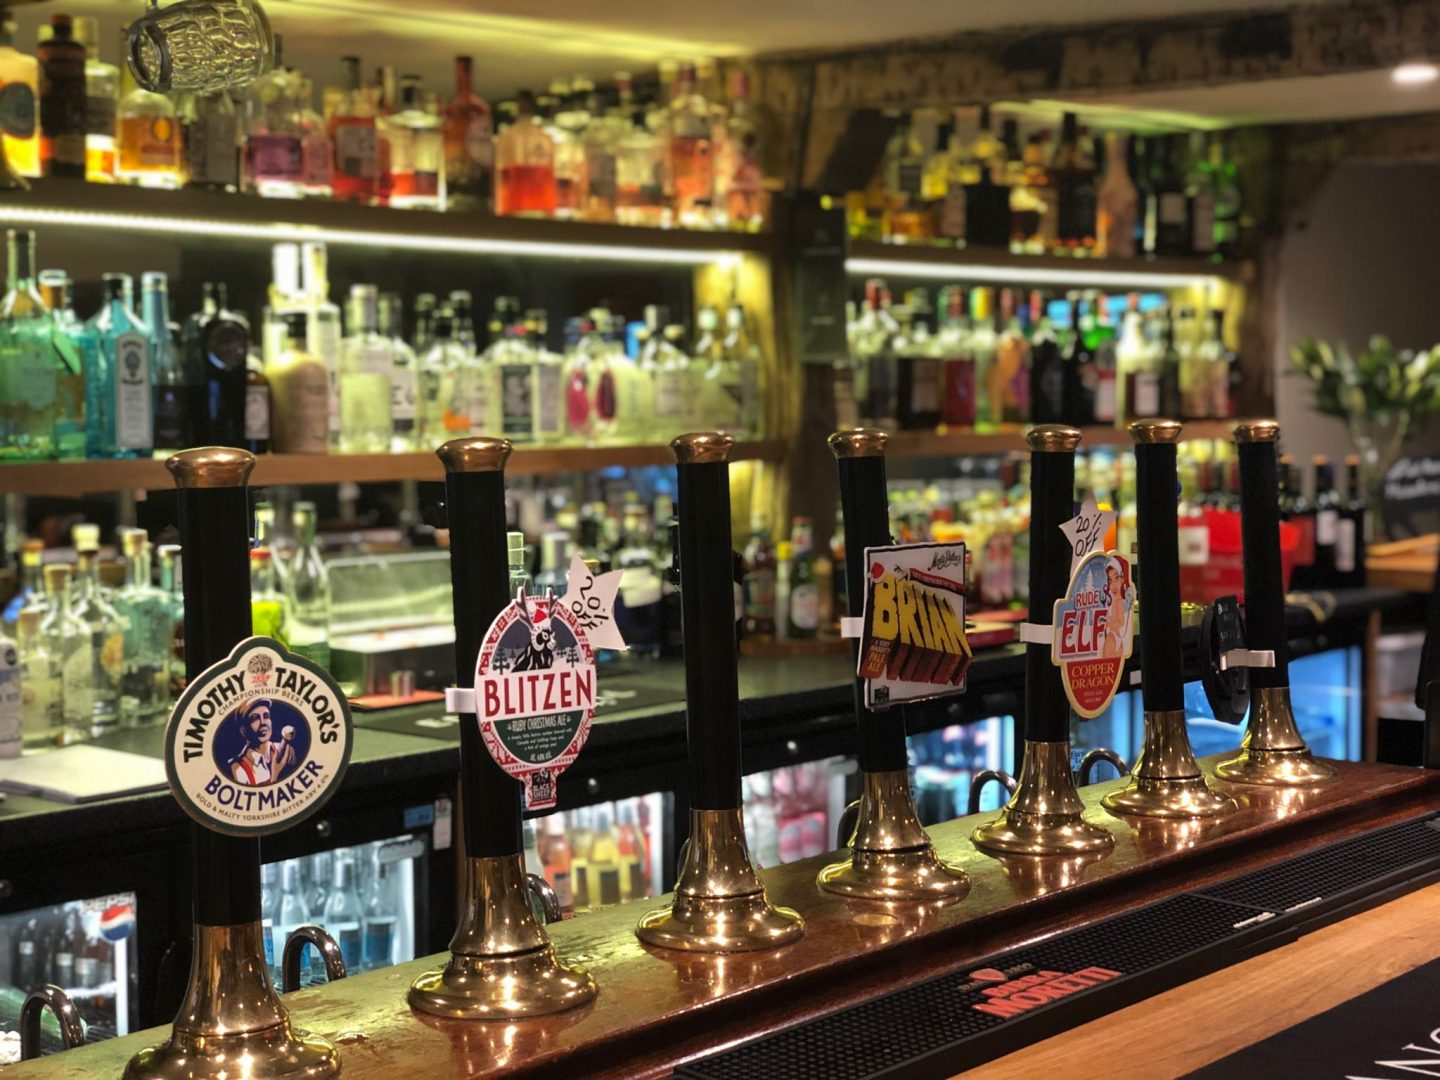 Marton Arms Bar near White Scar Cave, showing a bar of hand pulls and an extensive gin selection just out of focus